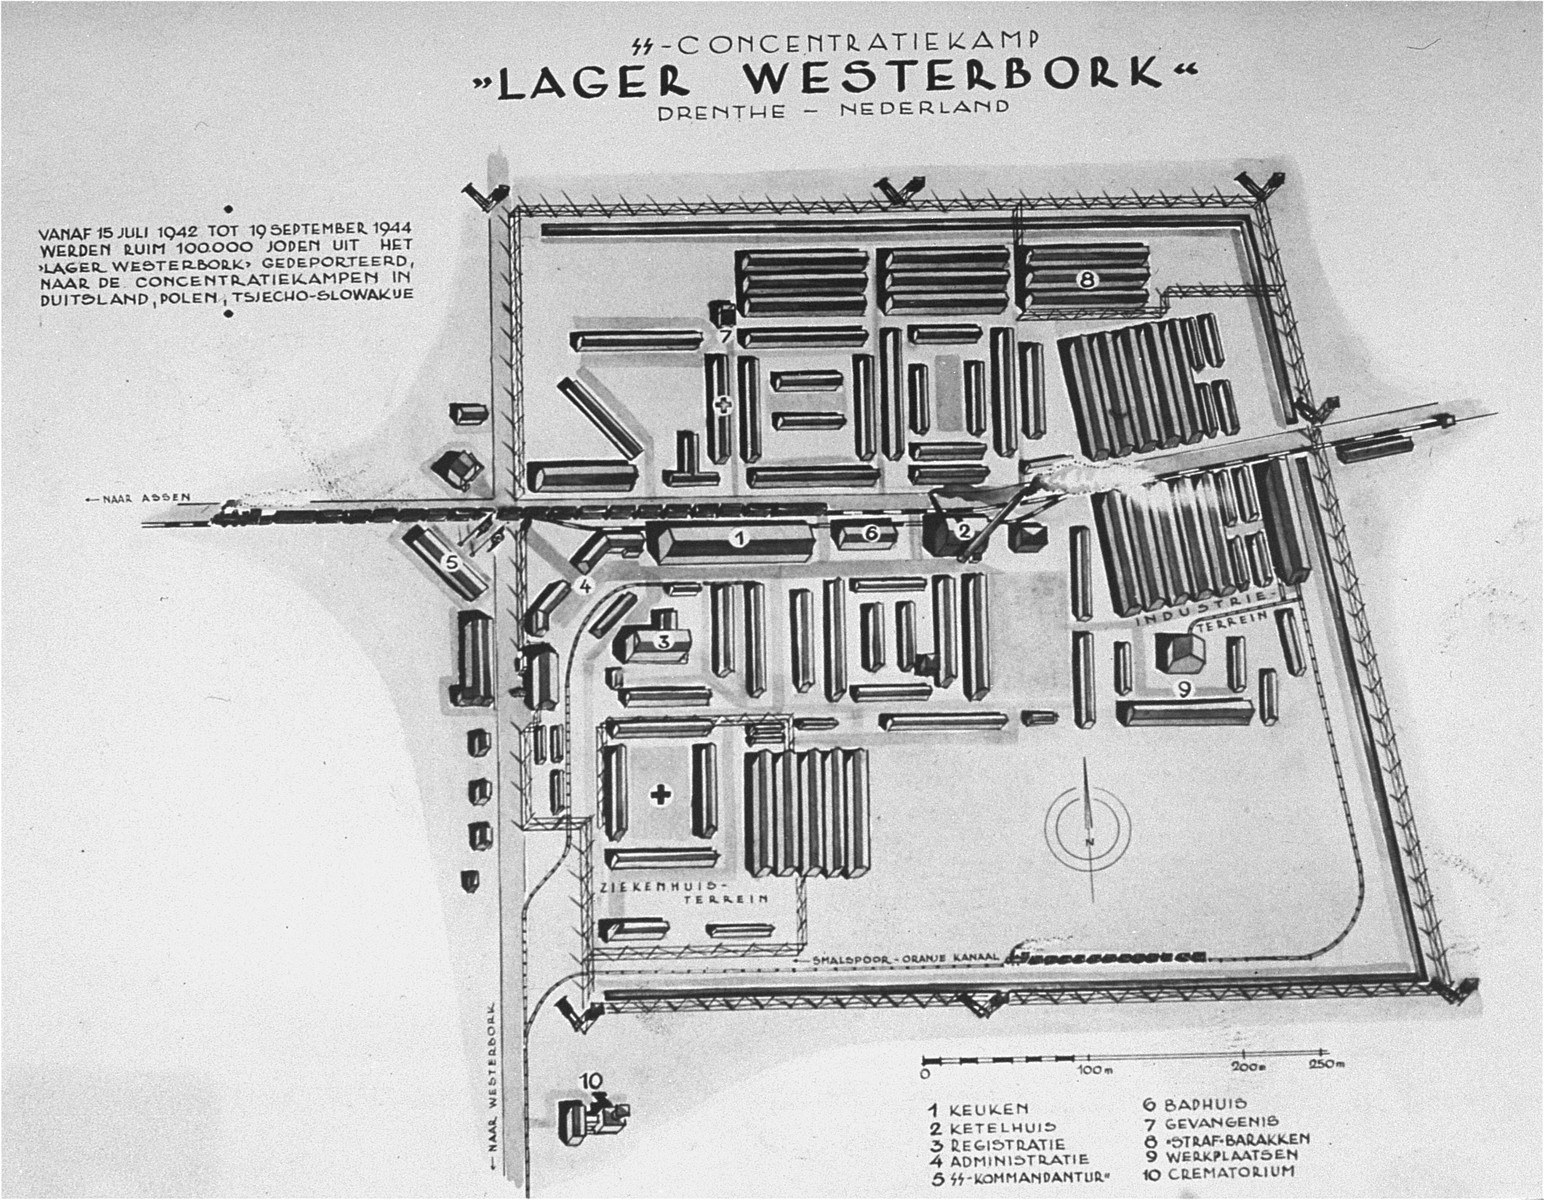 A map of the Westerbork transit camp.  Until July 1942, Westerbork was a refugee camp for Jews who had moved illegally to the Netherlands.  After the Nazi conquest of Holland, it was expanded it into a transit camp, where it operated April 1944.